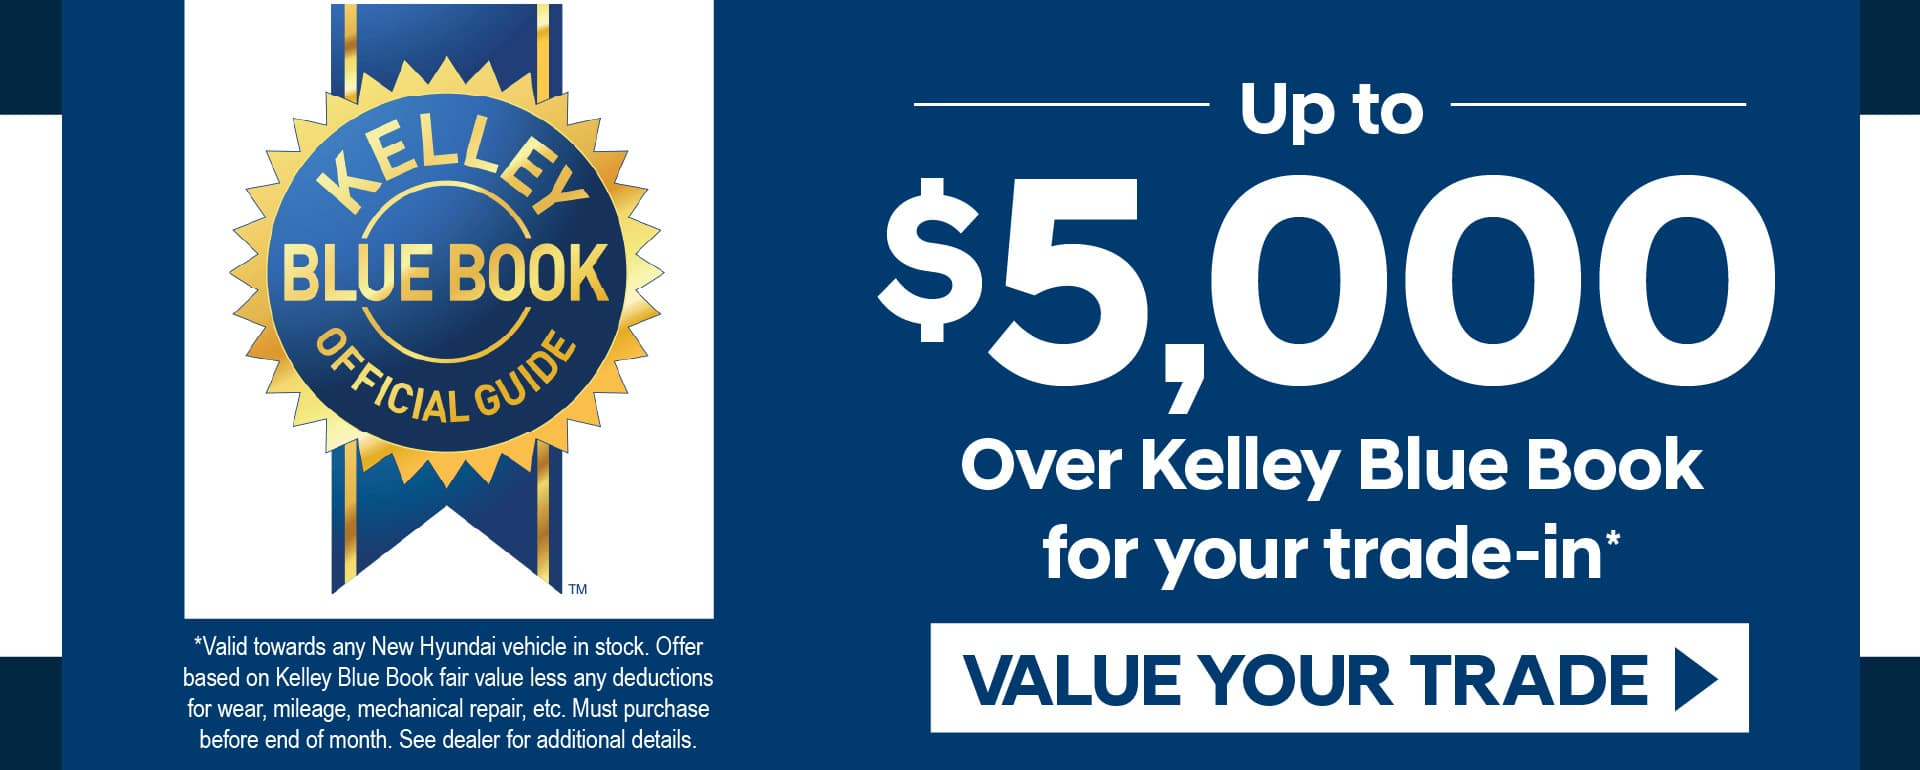 up to $5,000 over Kelley Blue Book for your trade - Click Here To Value Your Trade